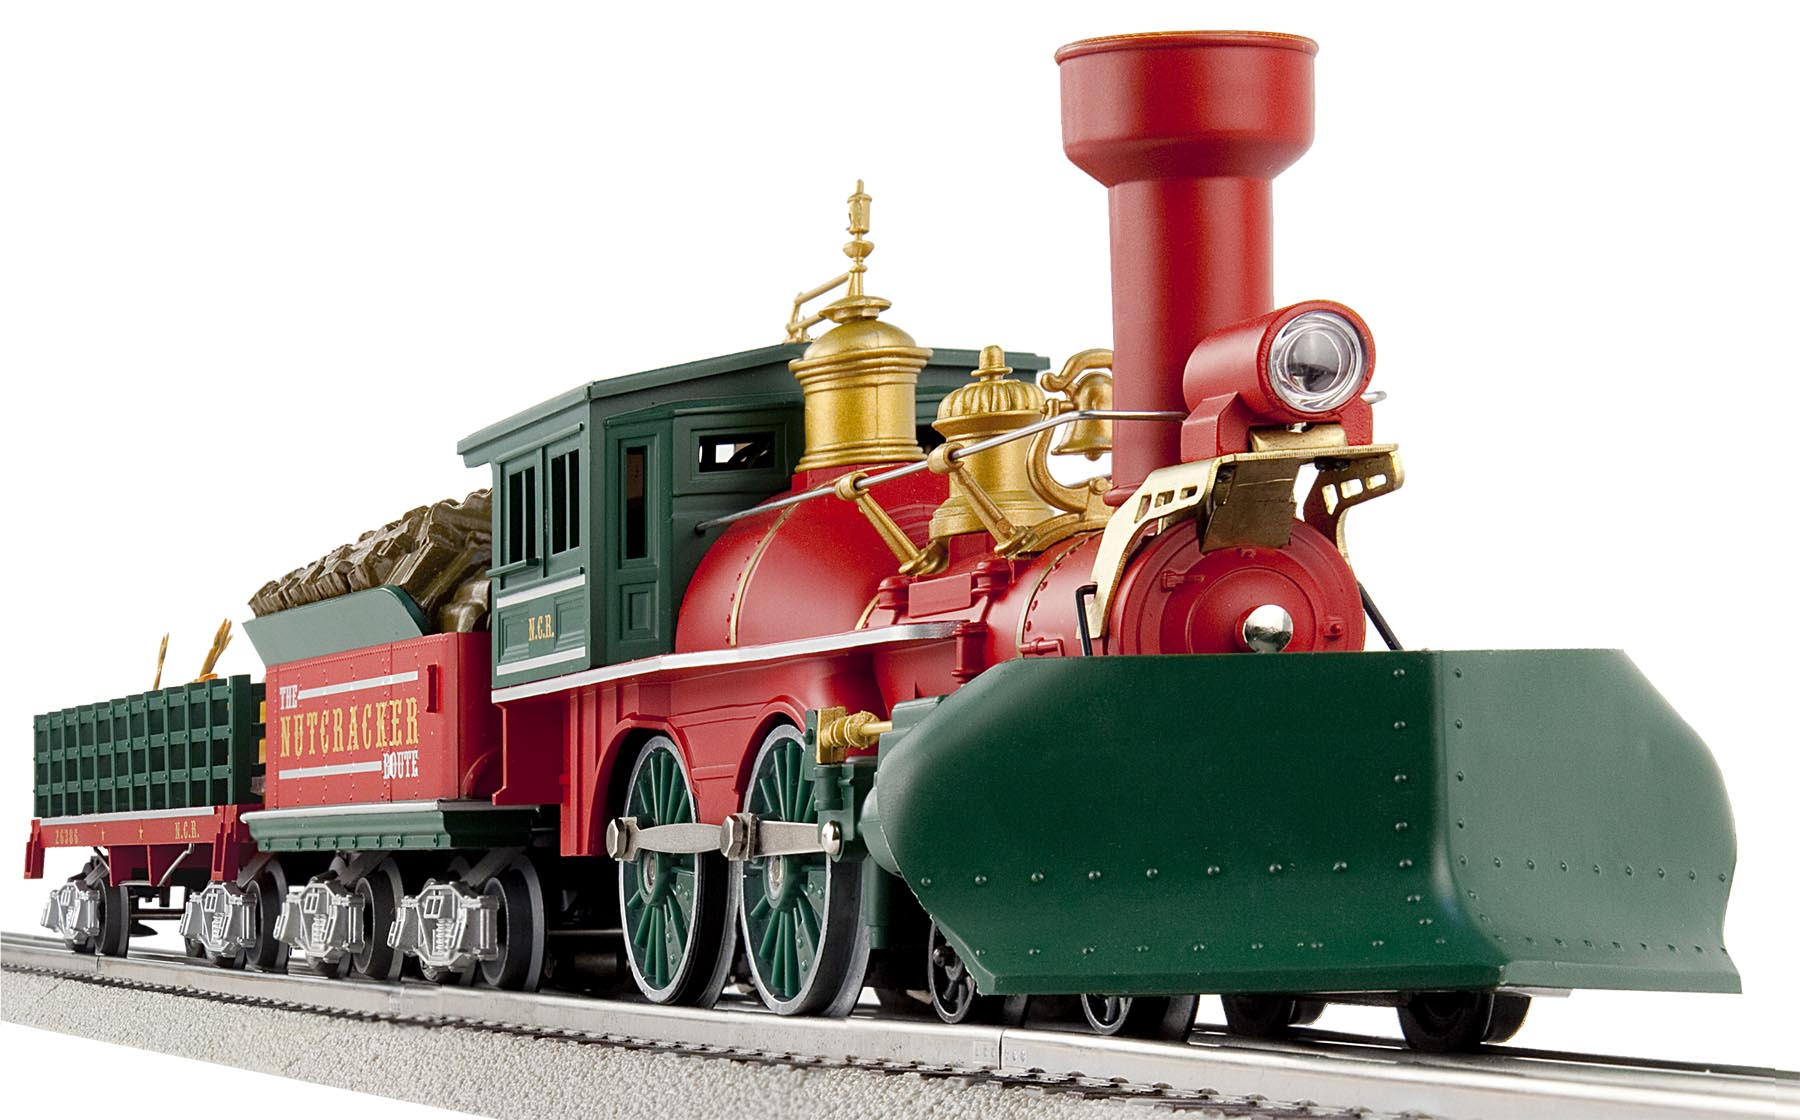 nutcracker route christmas train set 4 4 0 general